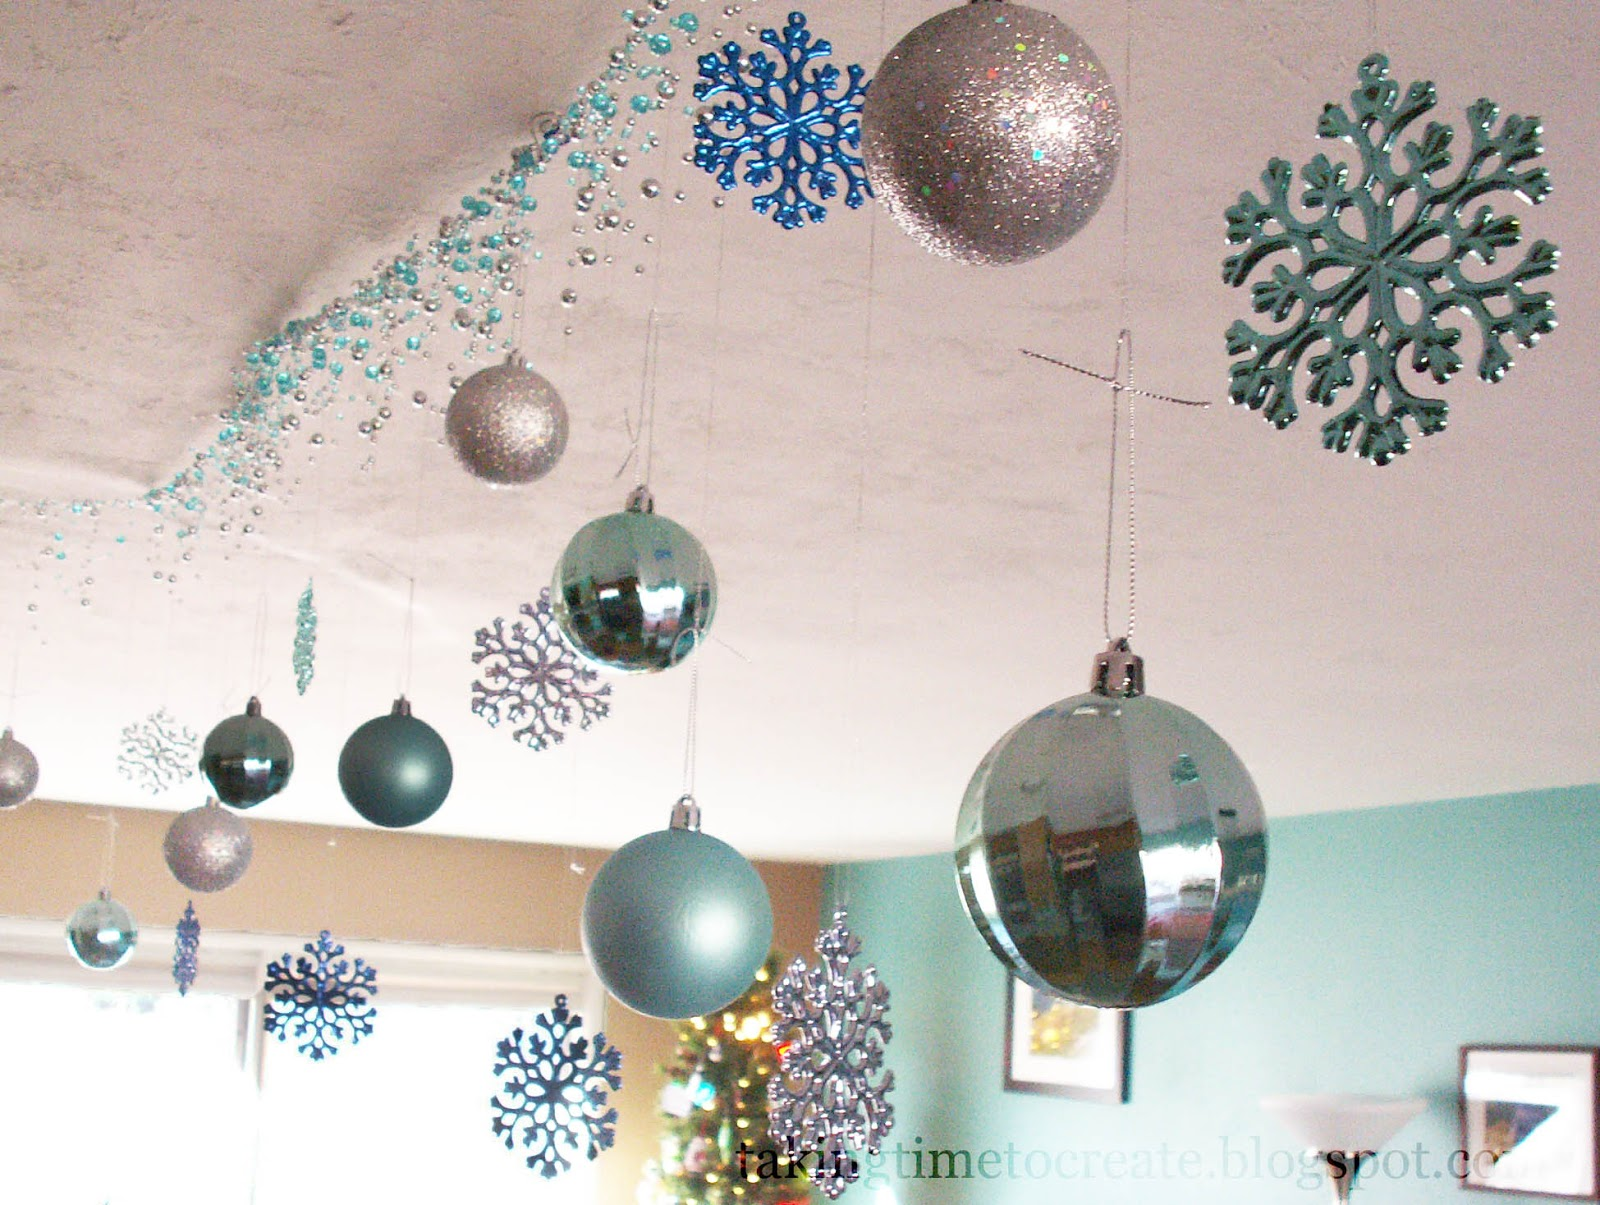 Christmas Decoration Ideas For Office Ceiling.Taking Time To Create Christmas On A Budget